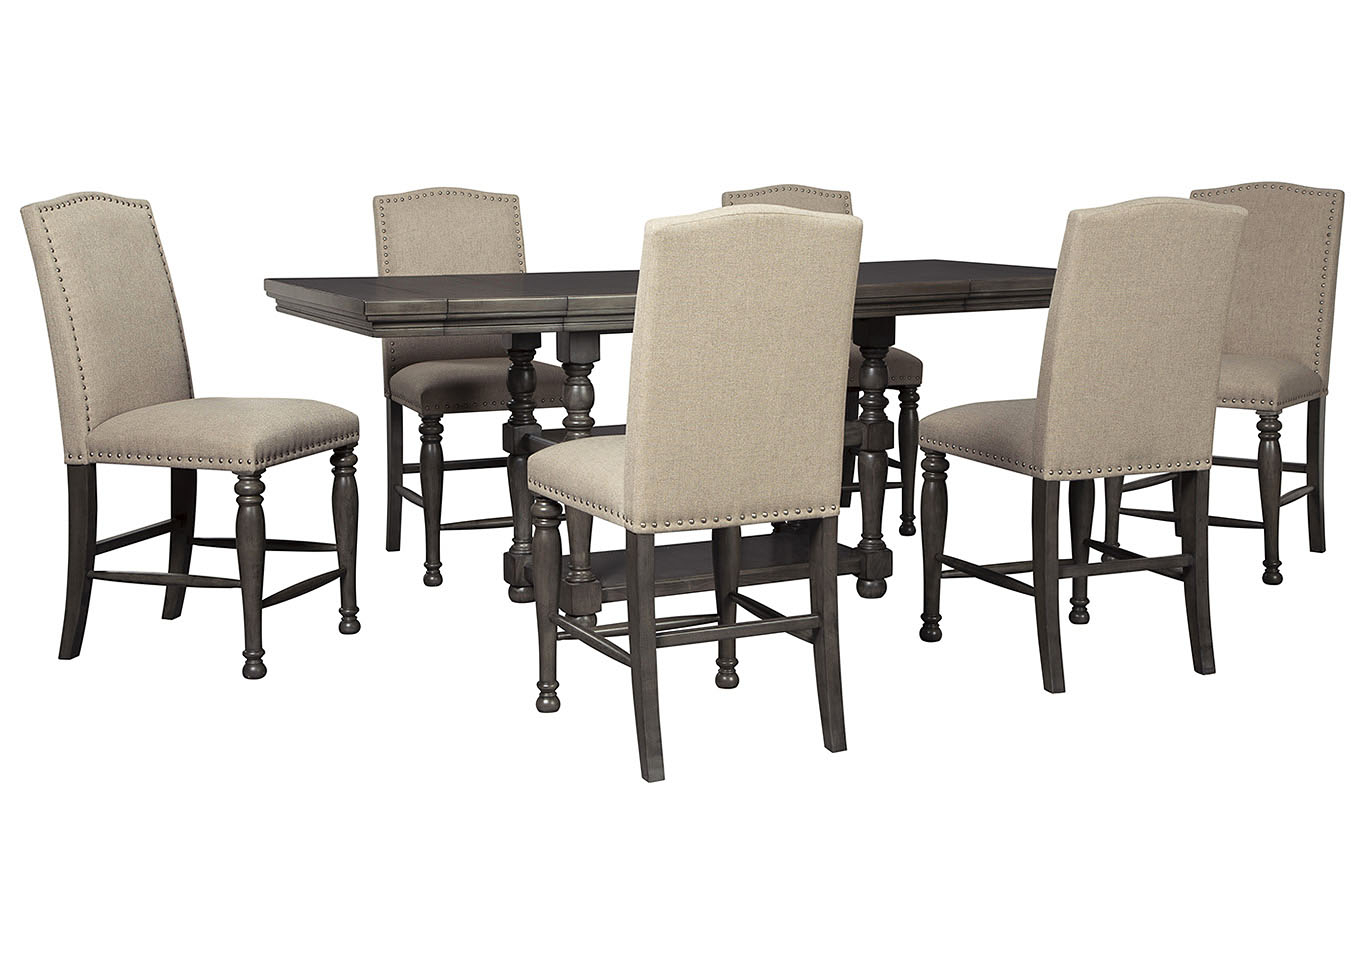 Newest Ashley Furniture Homestore – Independently Owned And Operated Throughout Berrios 3 Piece Counter Height Dining Sets (View 9 of 20)